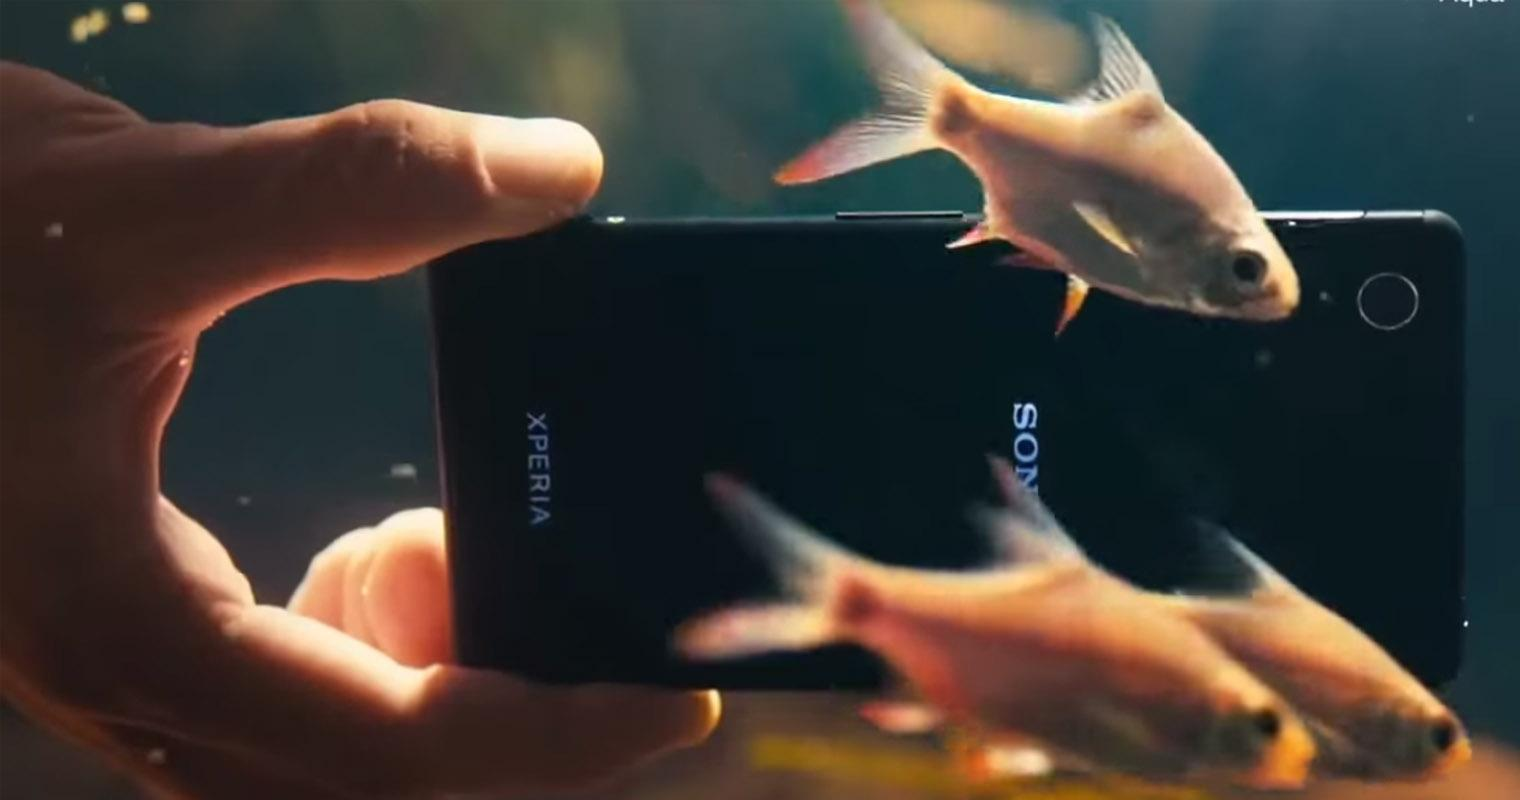 There's a glaring problem with Sony's 'waterproof' smartphones